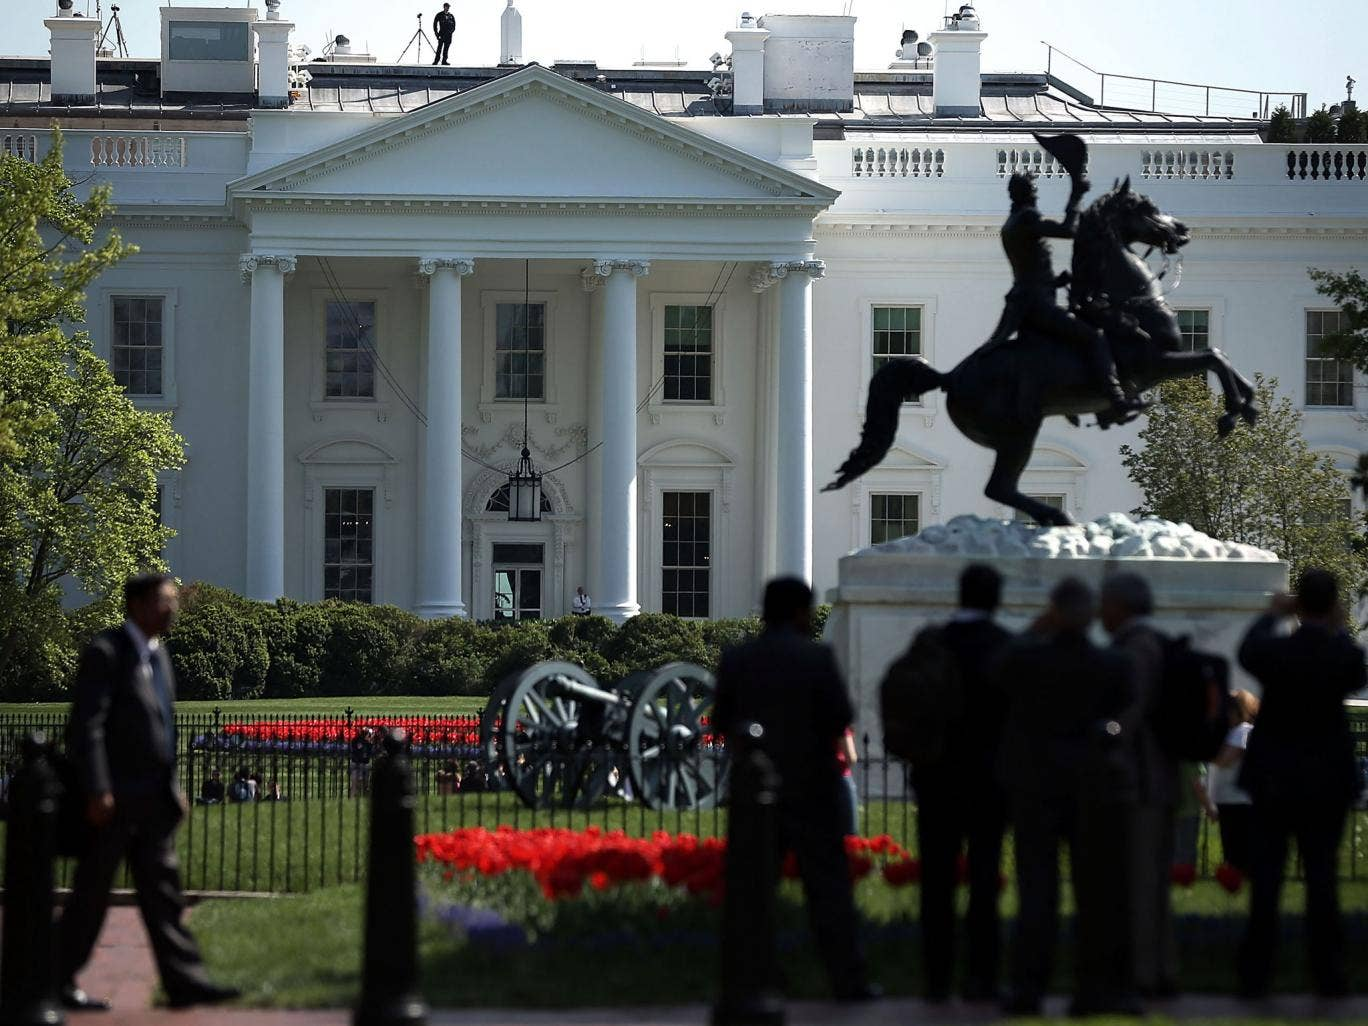 Hackers compromised Twitter accounts of The Associated Press yesterday, sending out a false tweet about an attack at the White House